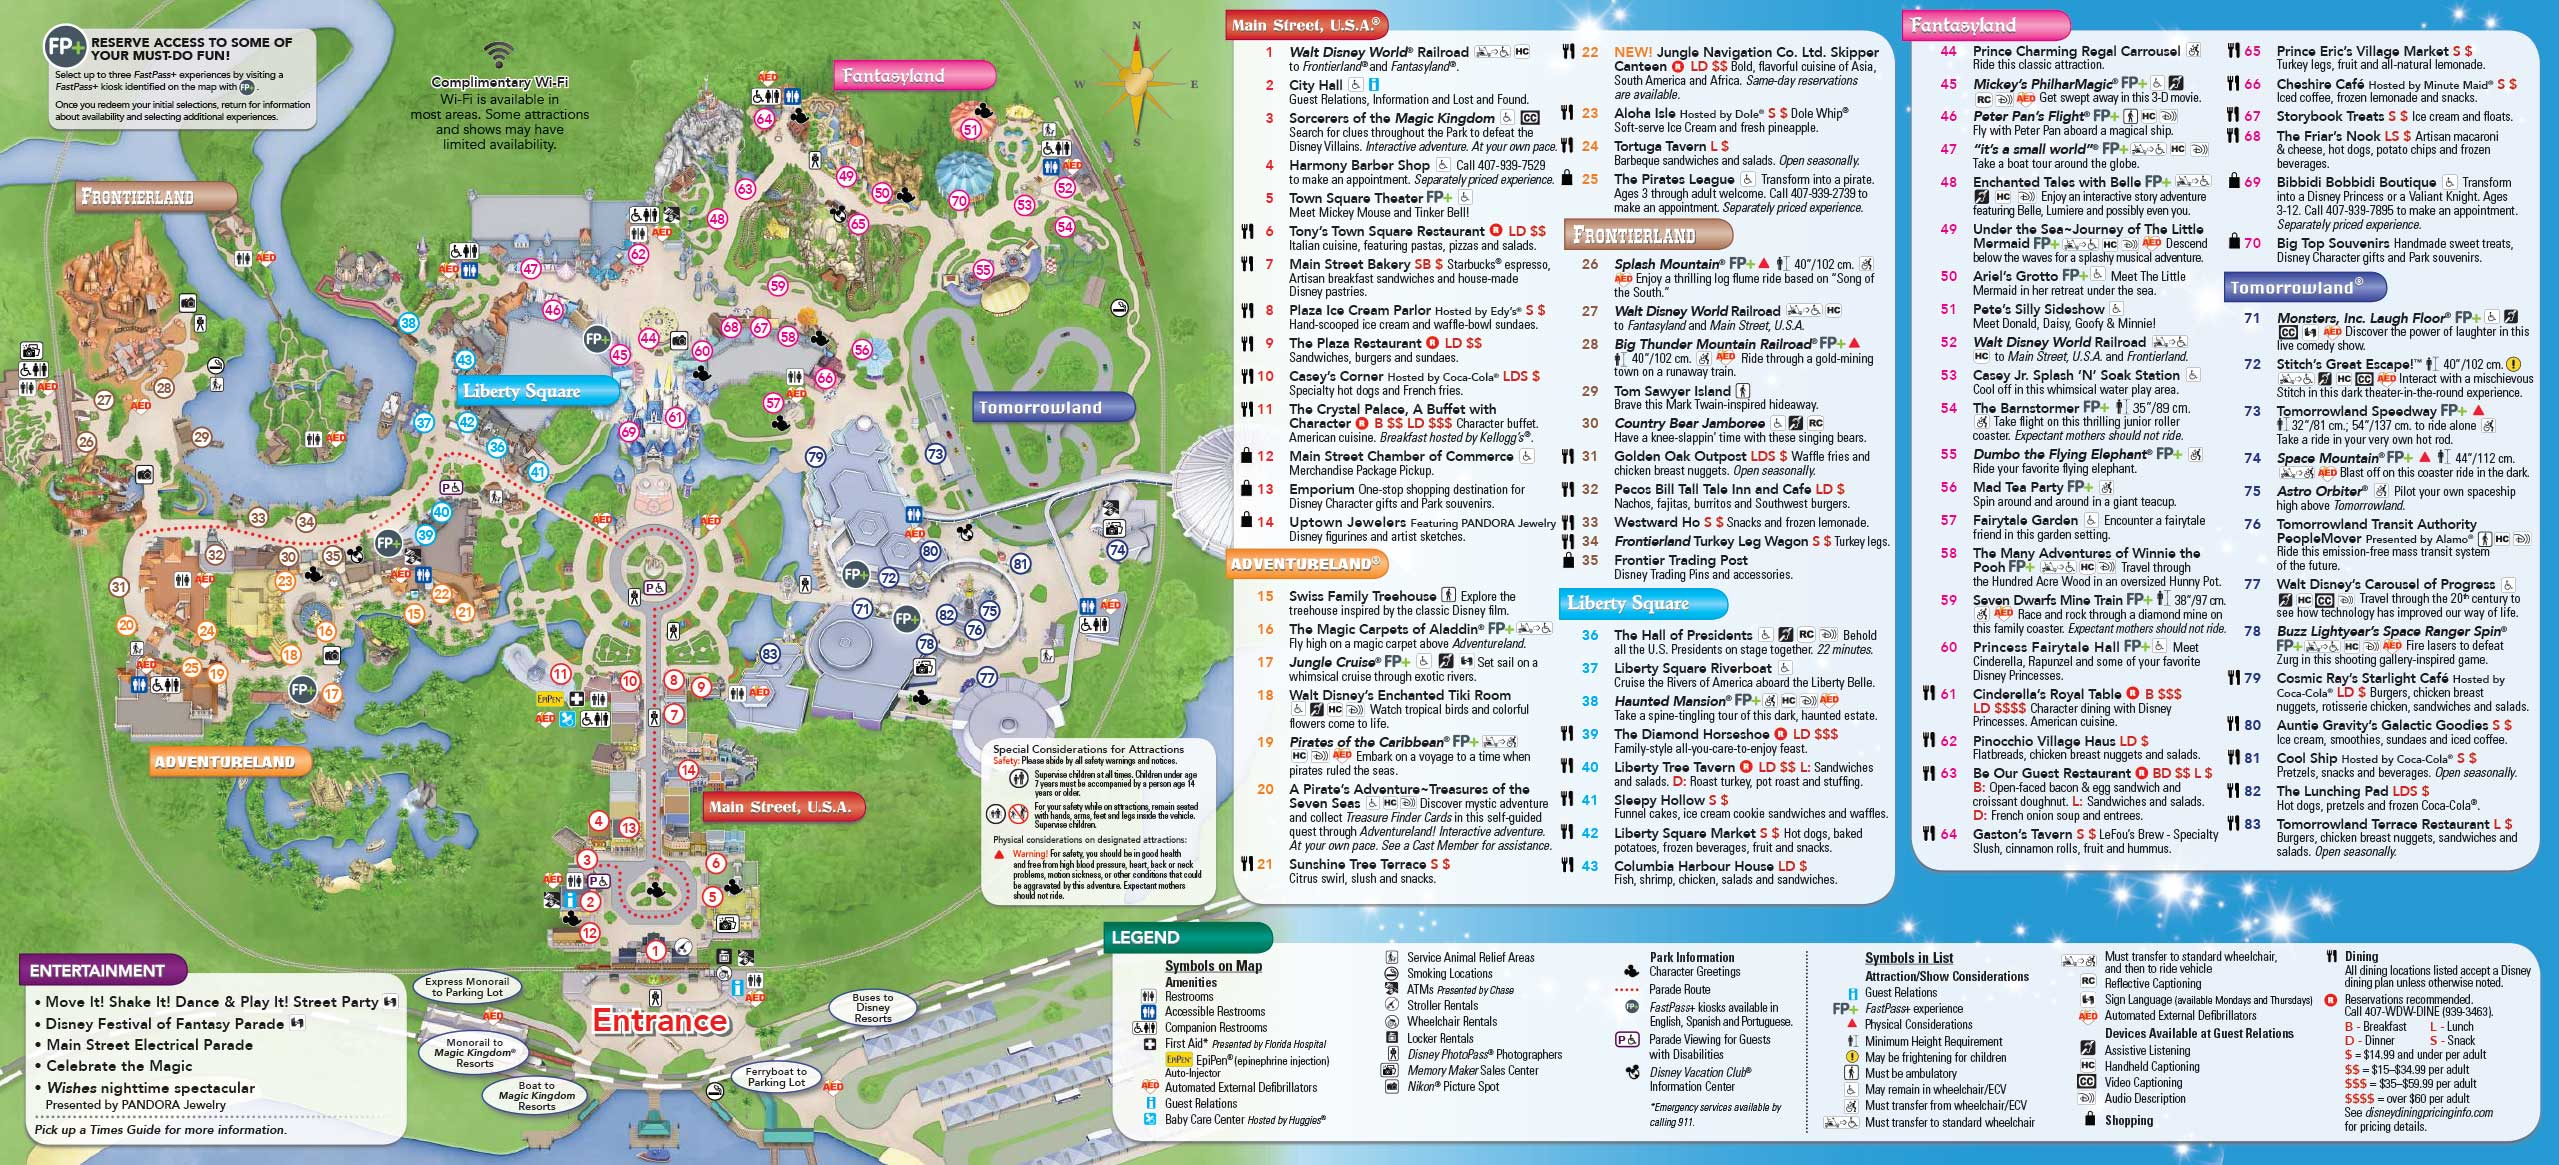 June 2016 Walt Disney World Park Maps - Photo 2 of 4 June Mountain Map on